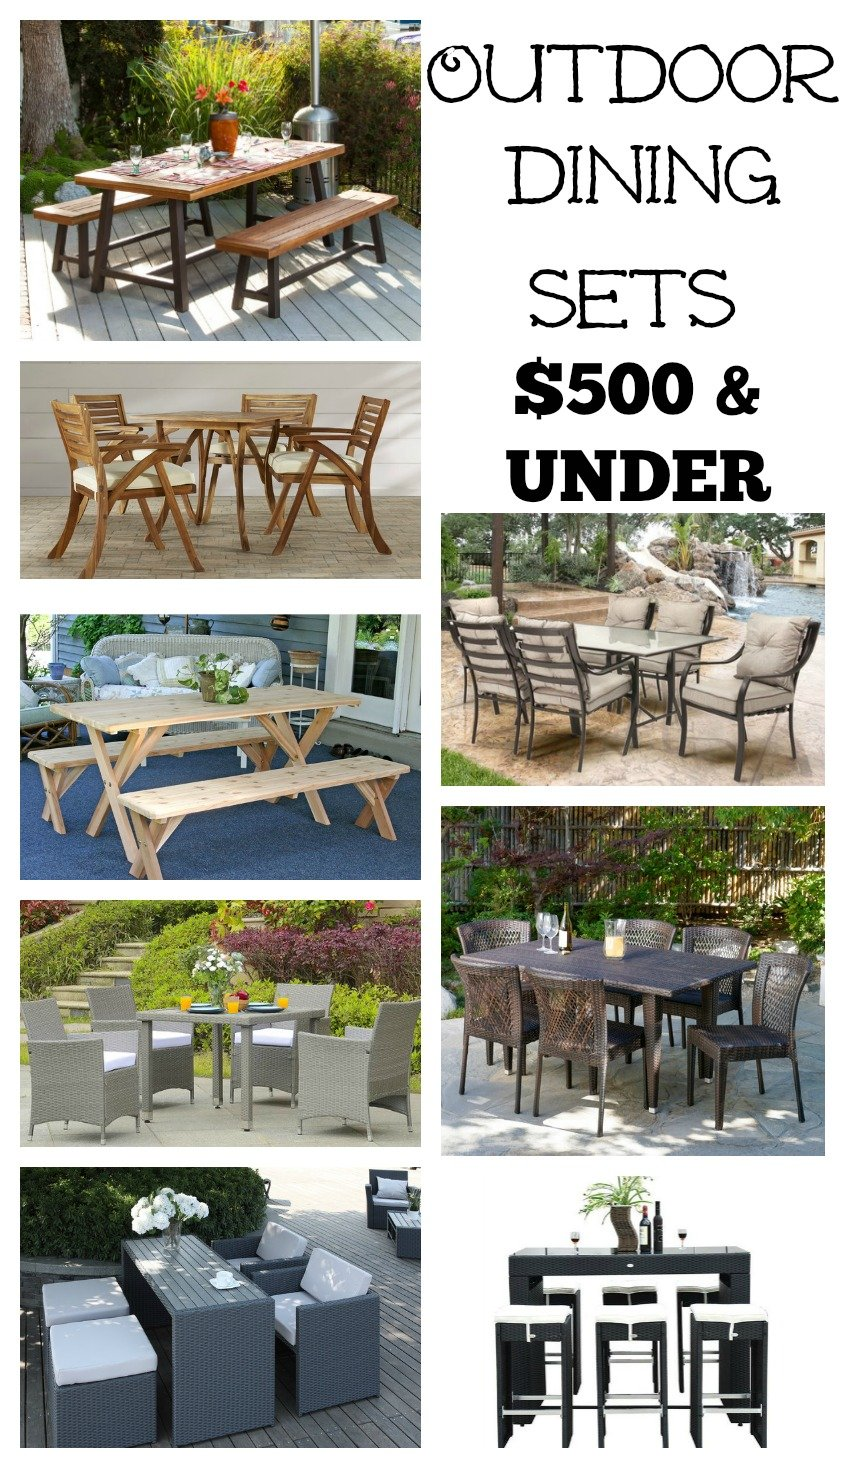 Outdoor Dining Sets $500 and Under